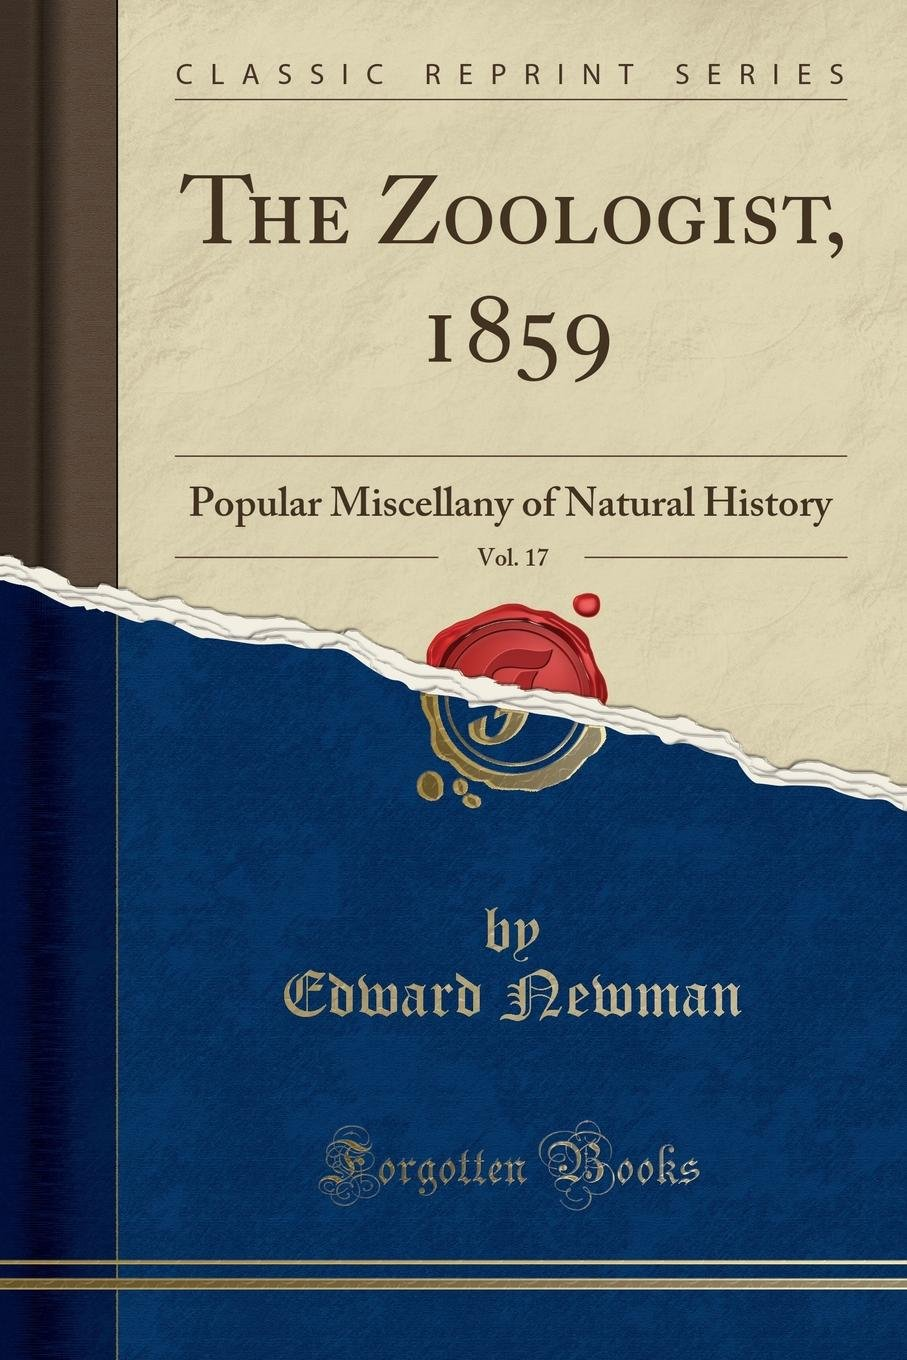 Download The Zoologist, 1859, Vol. 17: Popular Miscellany of Natural History (Classic Reprint) ebook